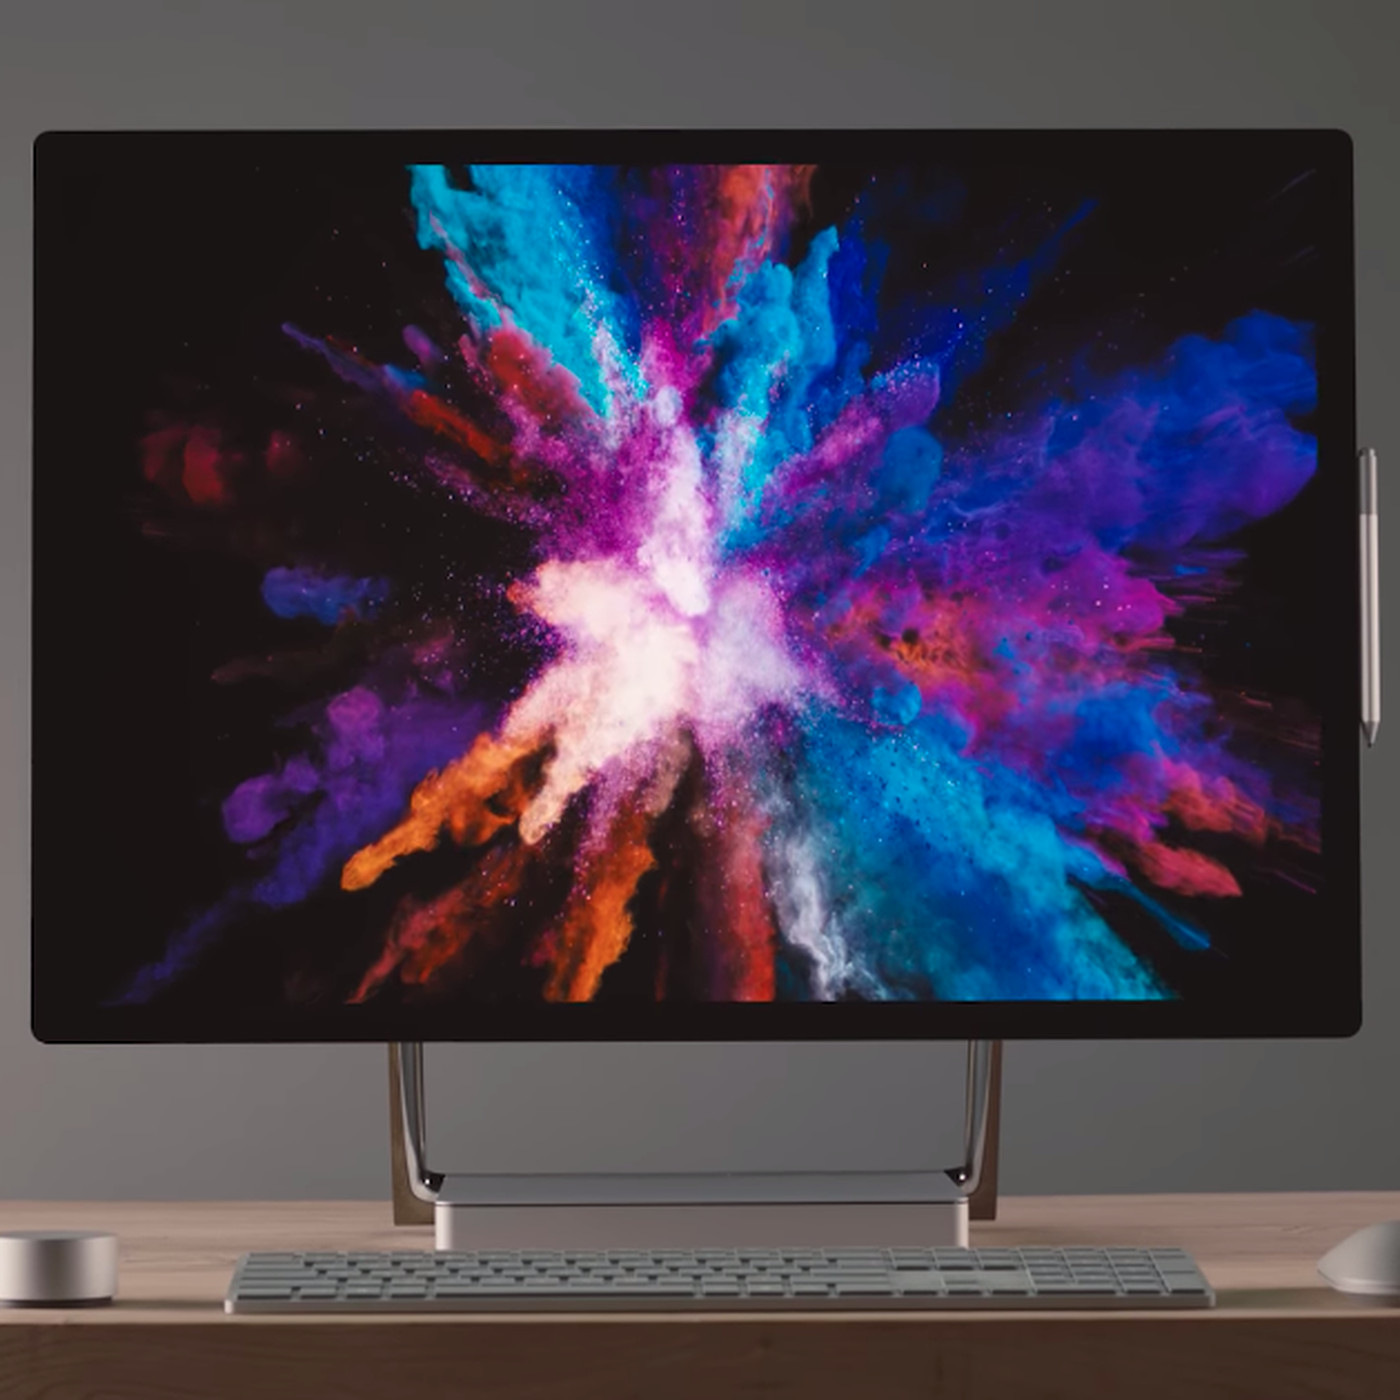 Microsoft Launches New Surface Studio 2 As The Fastest Surface Ever